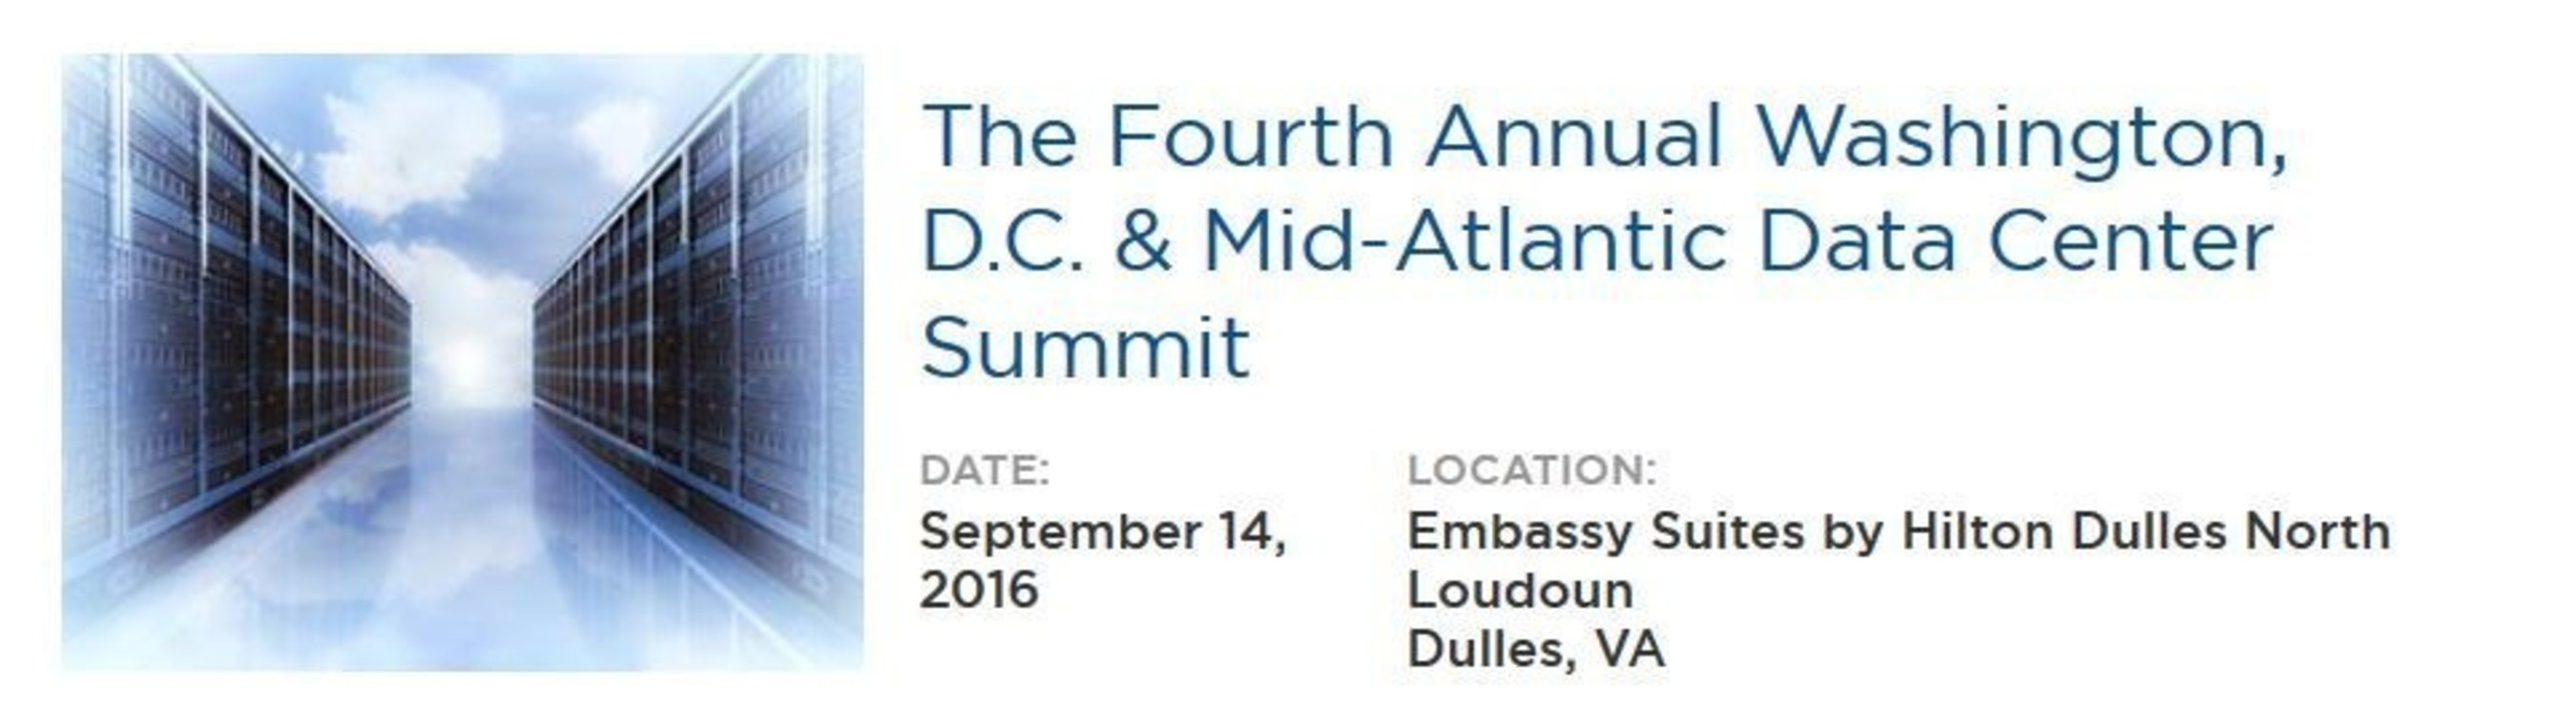 Record Attendance Expected at 4th Annual Washington, D.C. & Mid-Atlantic Data Center Summit